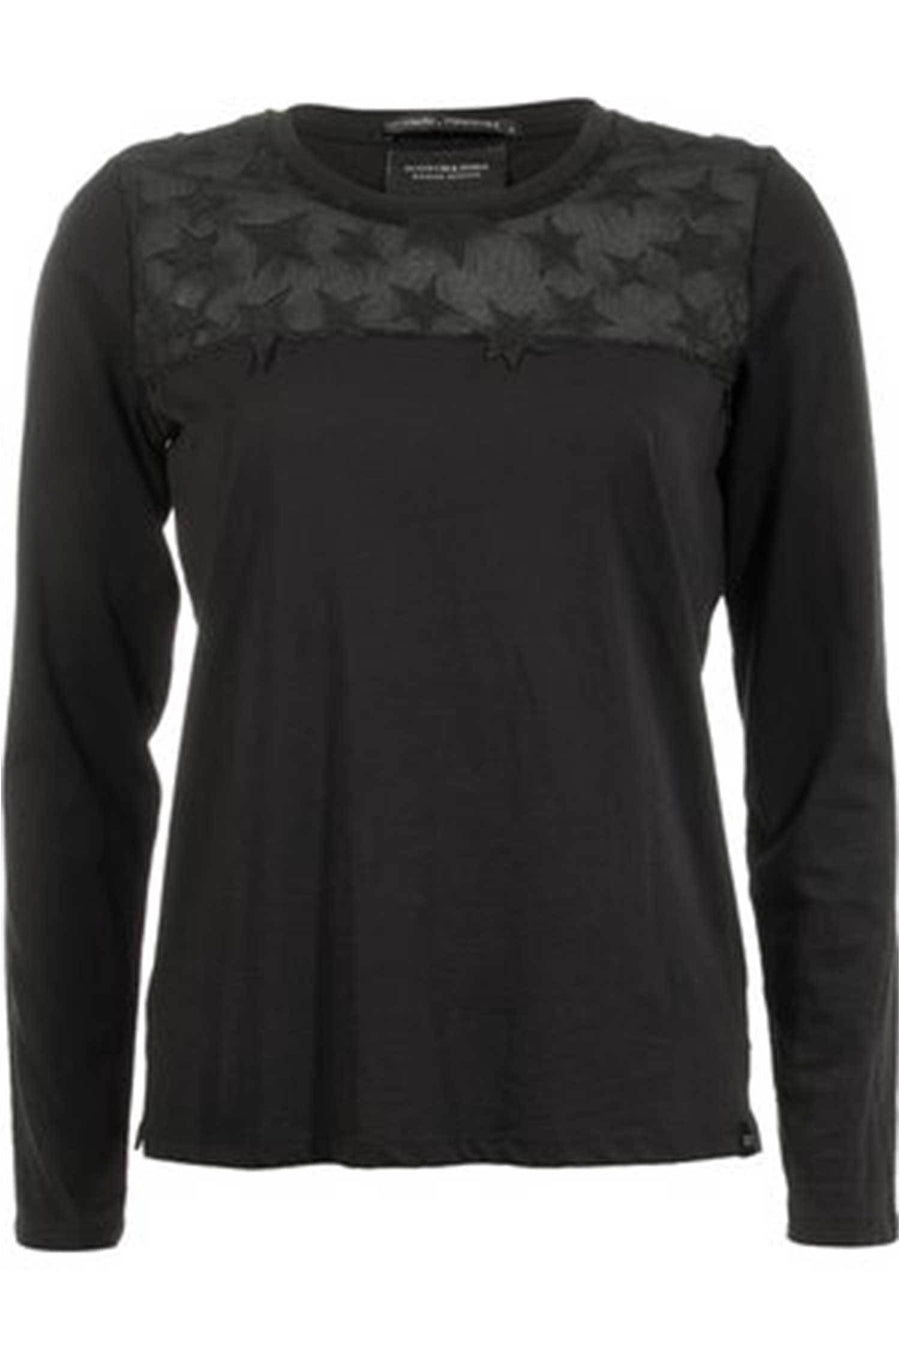 Shop Online Long Sleeve Tee With Star Mesh by Maison Scotch  Frockaholics Tops